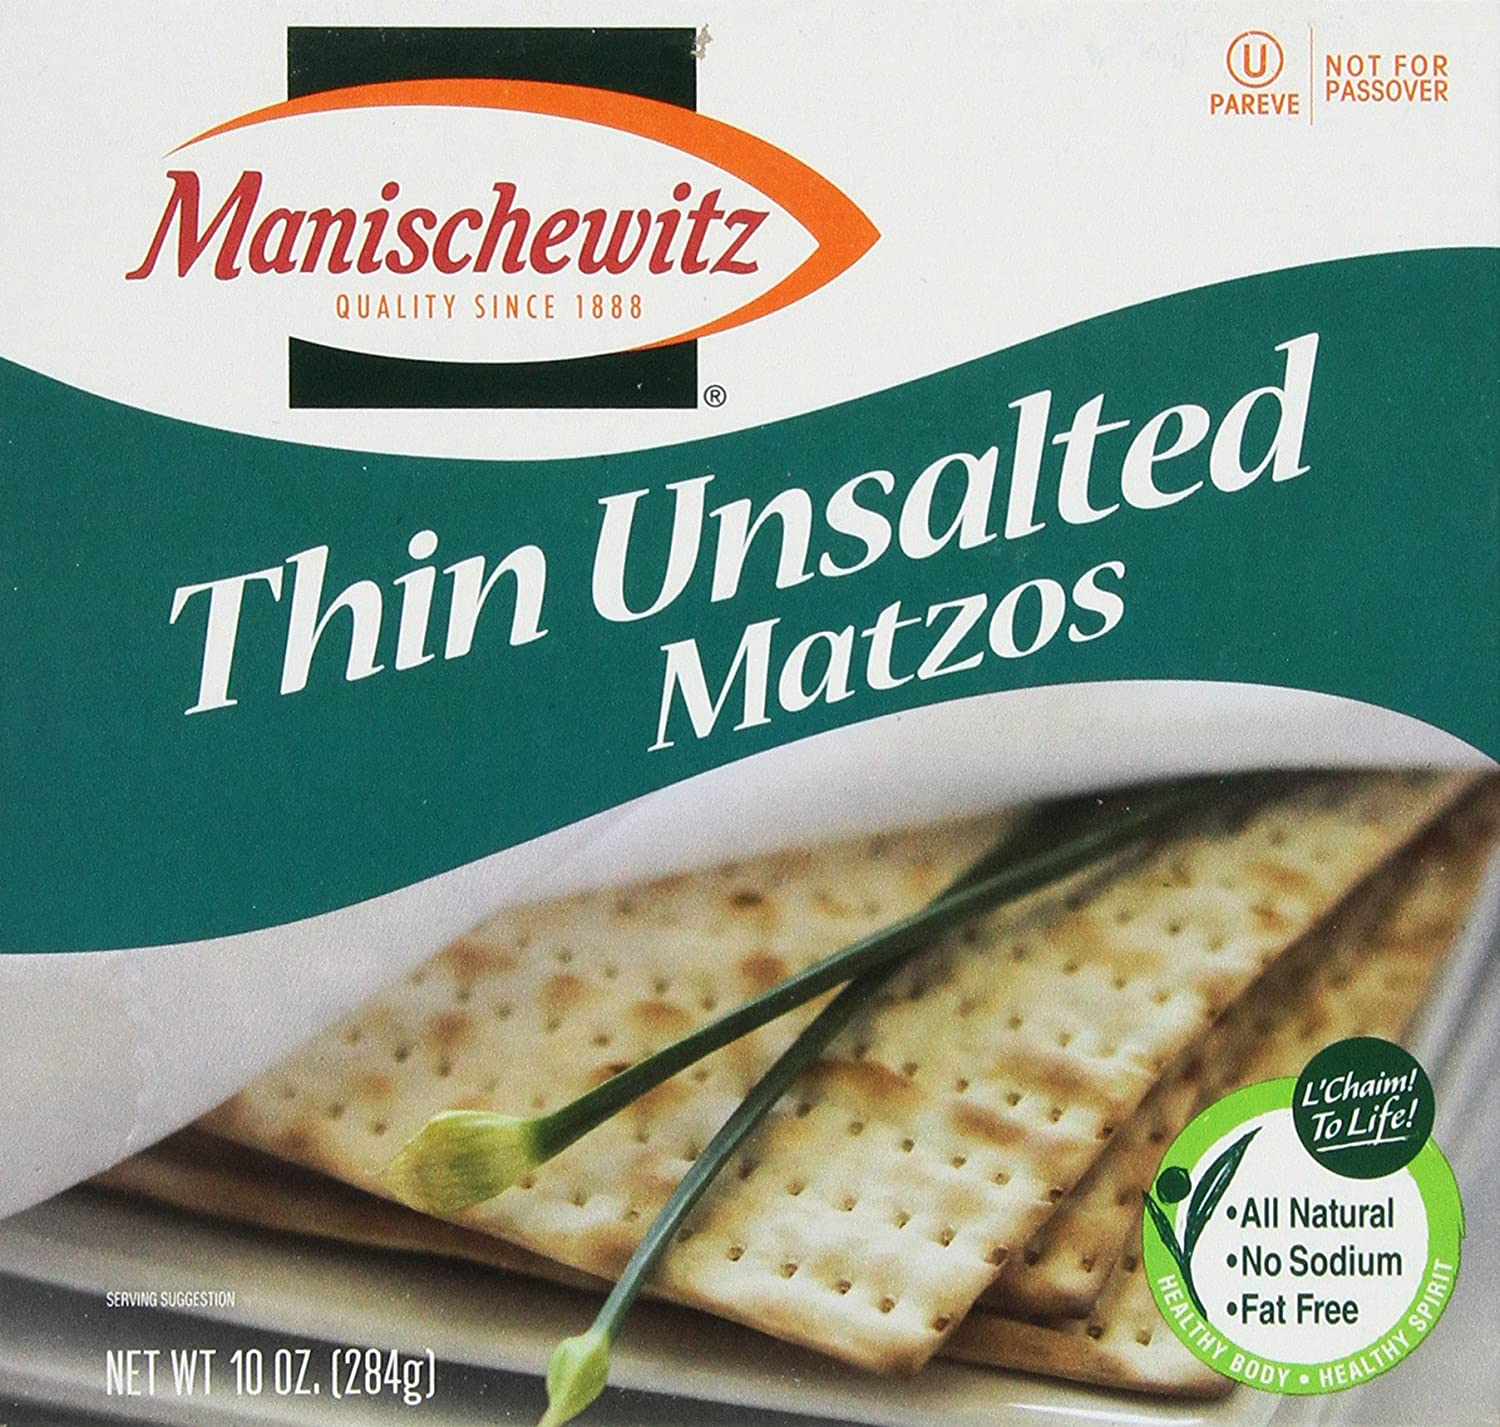 MANISCHEWITZ Thin Unsalted Matzo Max 74% OFF 10-Ounce Pack Boxes Chicago Mall 8 of